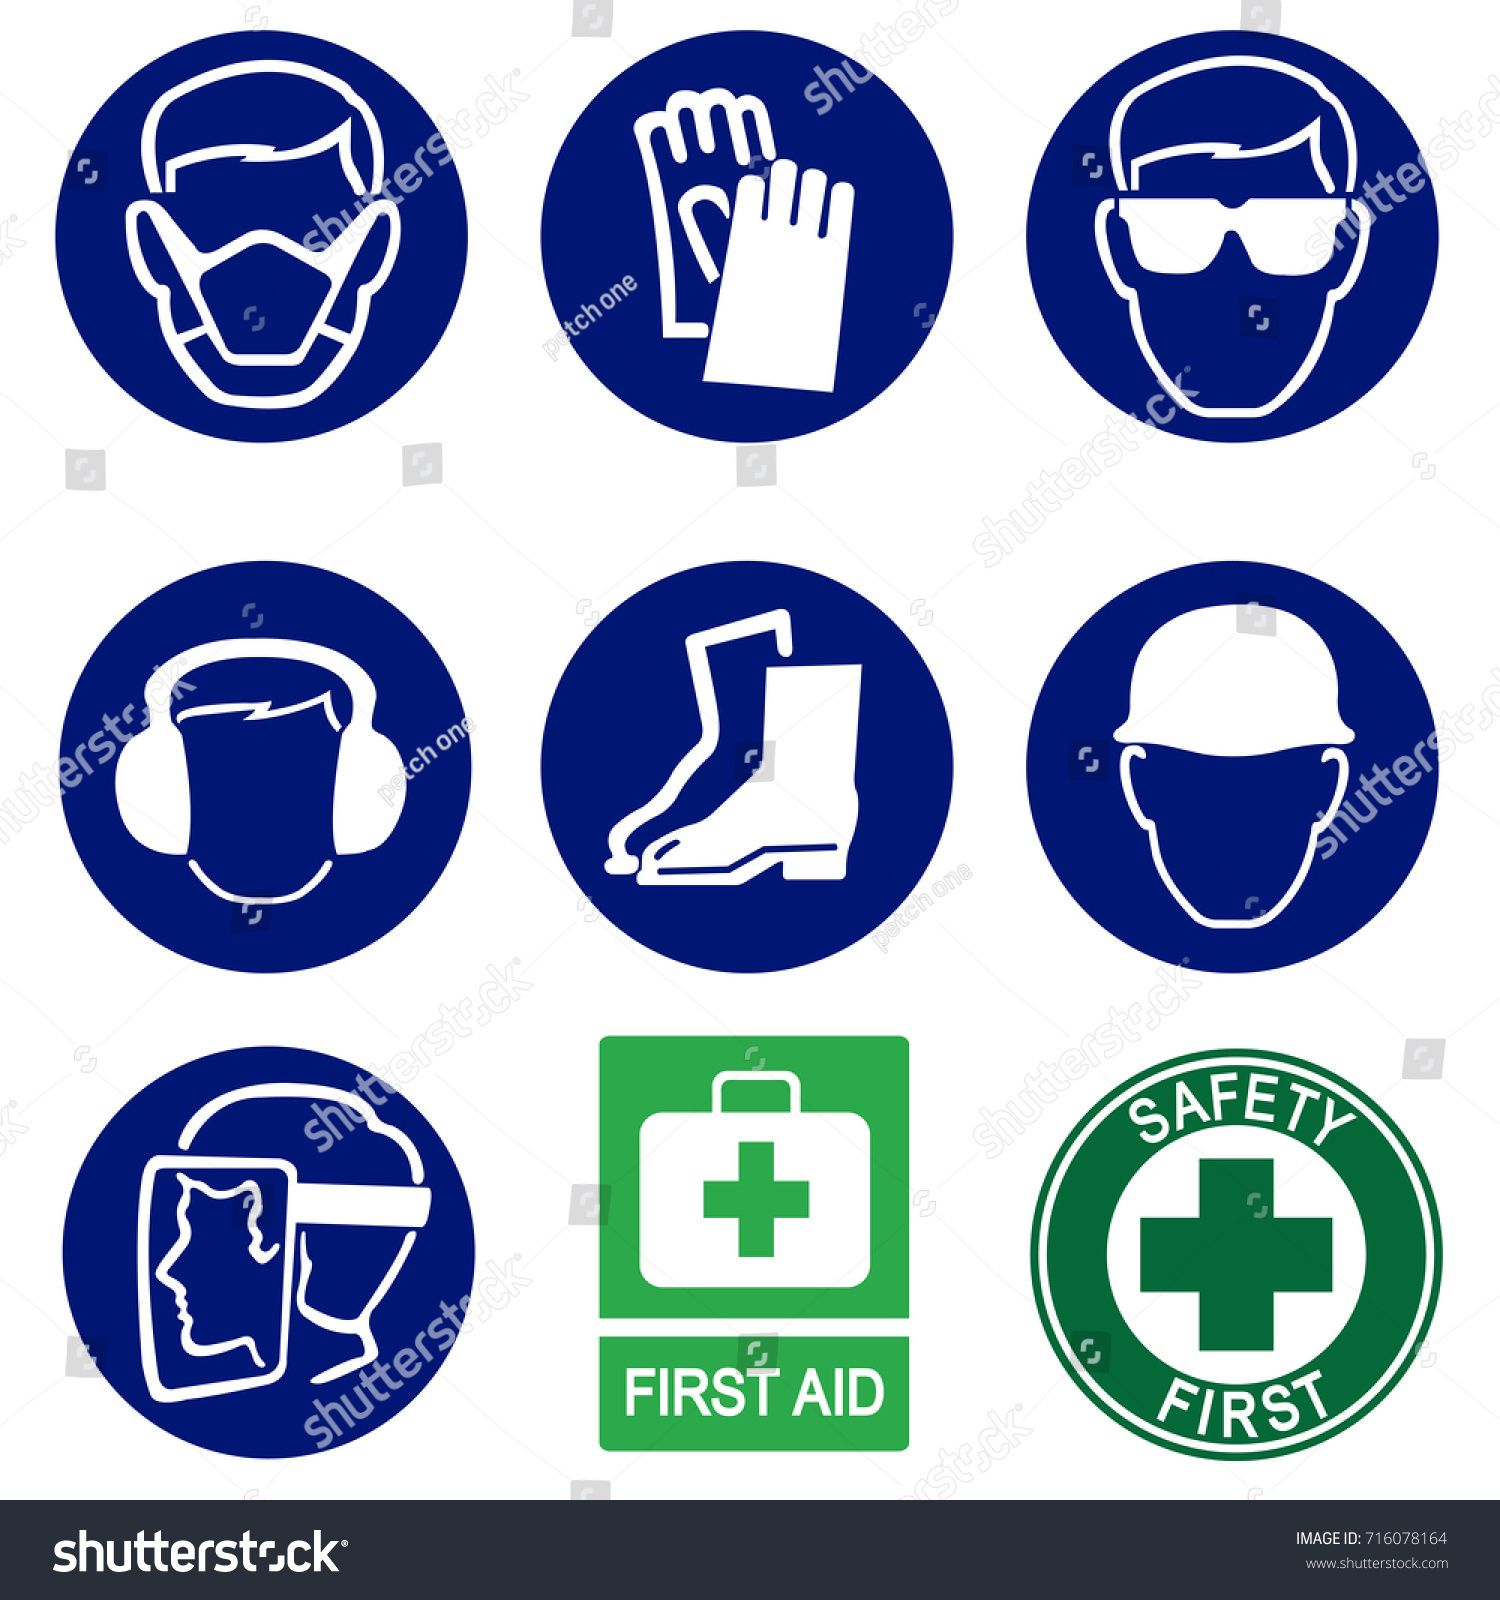 Safety Icons Construction Industry Health Sponsored Affiliate Icons Safety Construction Safety And First Aid Social Media Graphics Resume Design Template